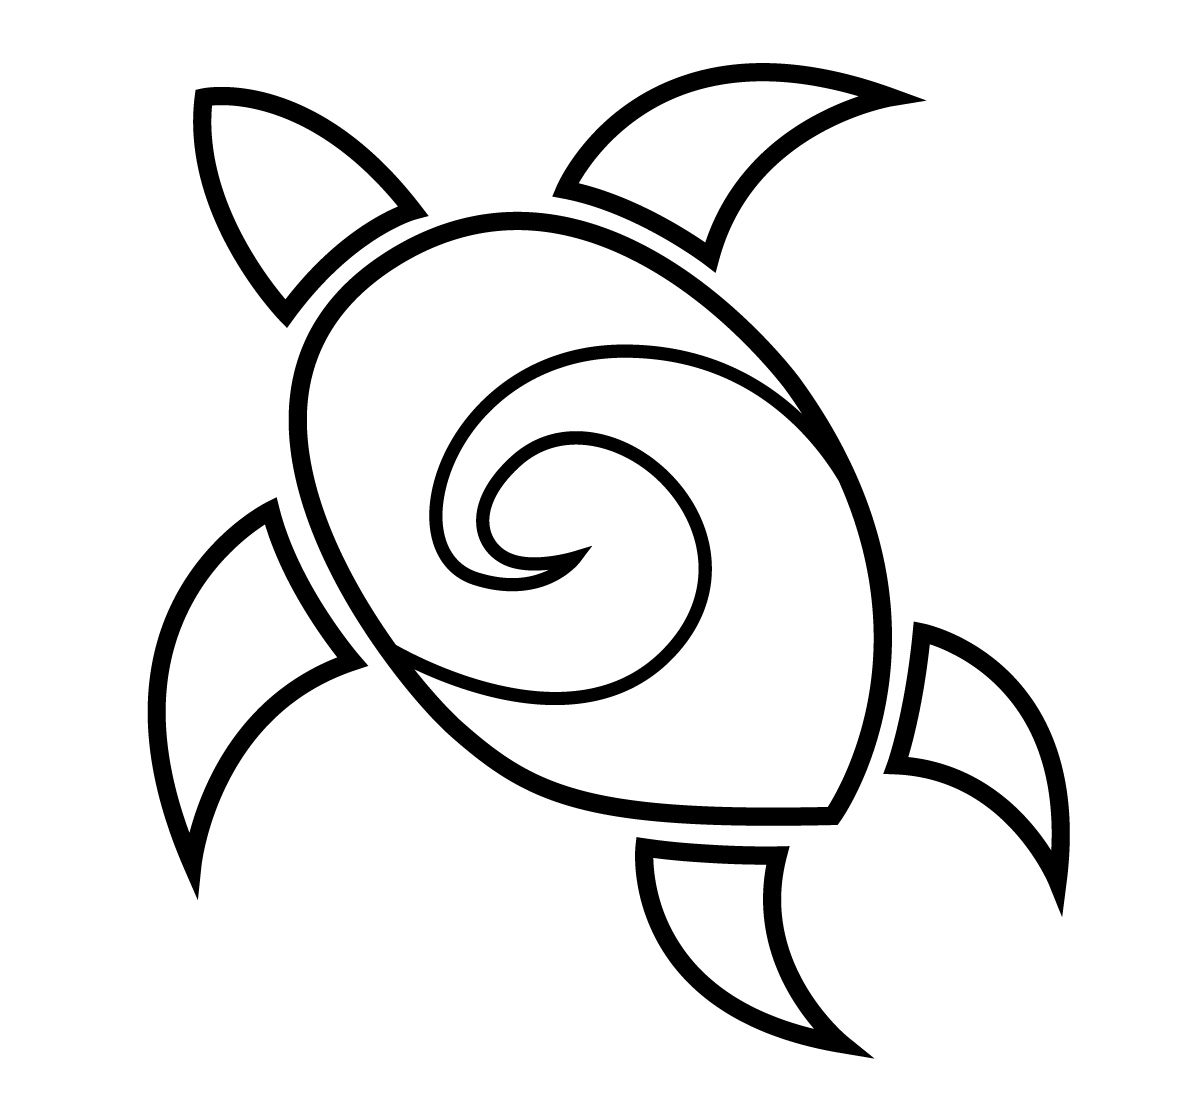 Easy Drawing Google Search Teahoopo2017 Pinterest Tattoo